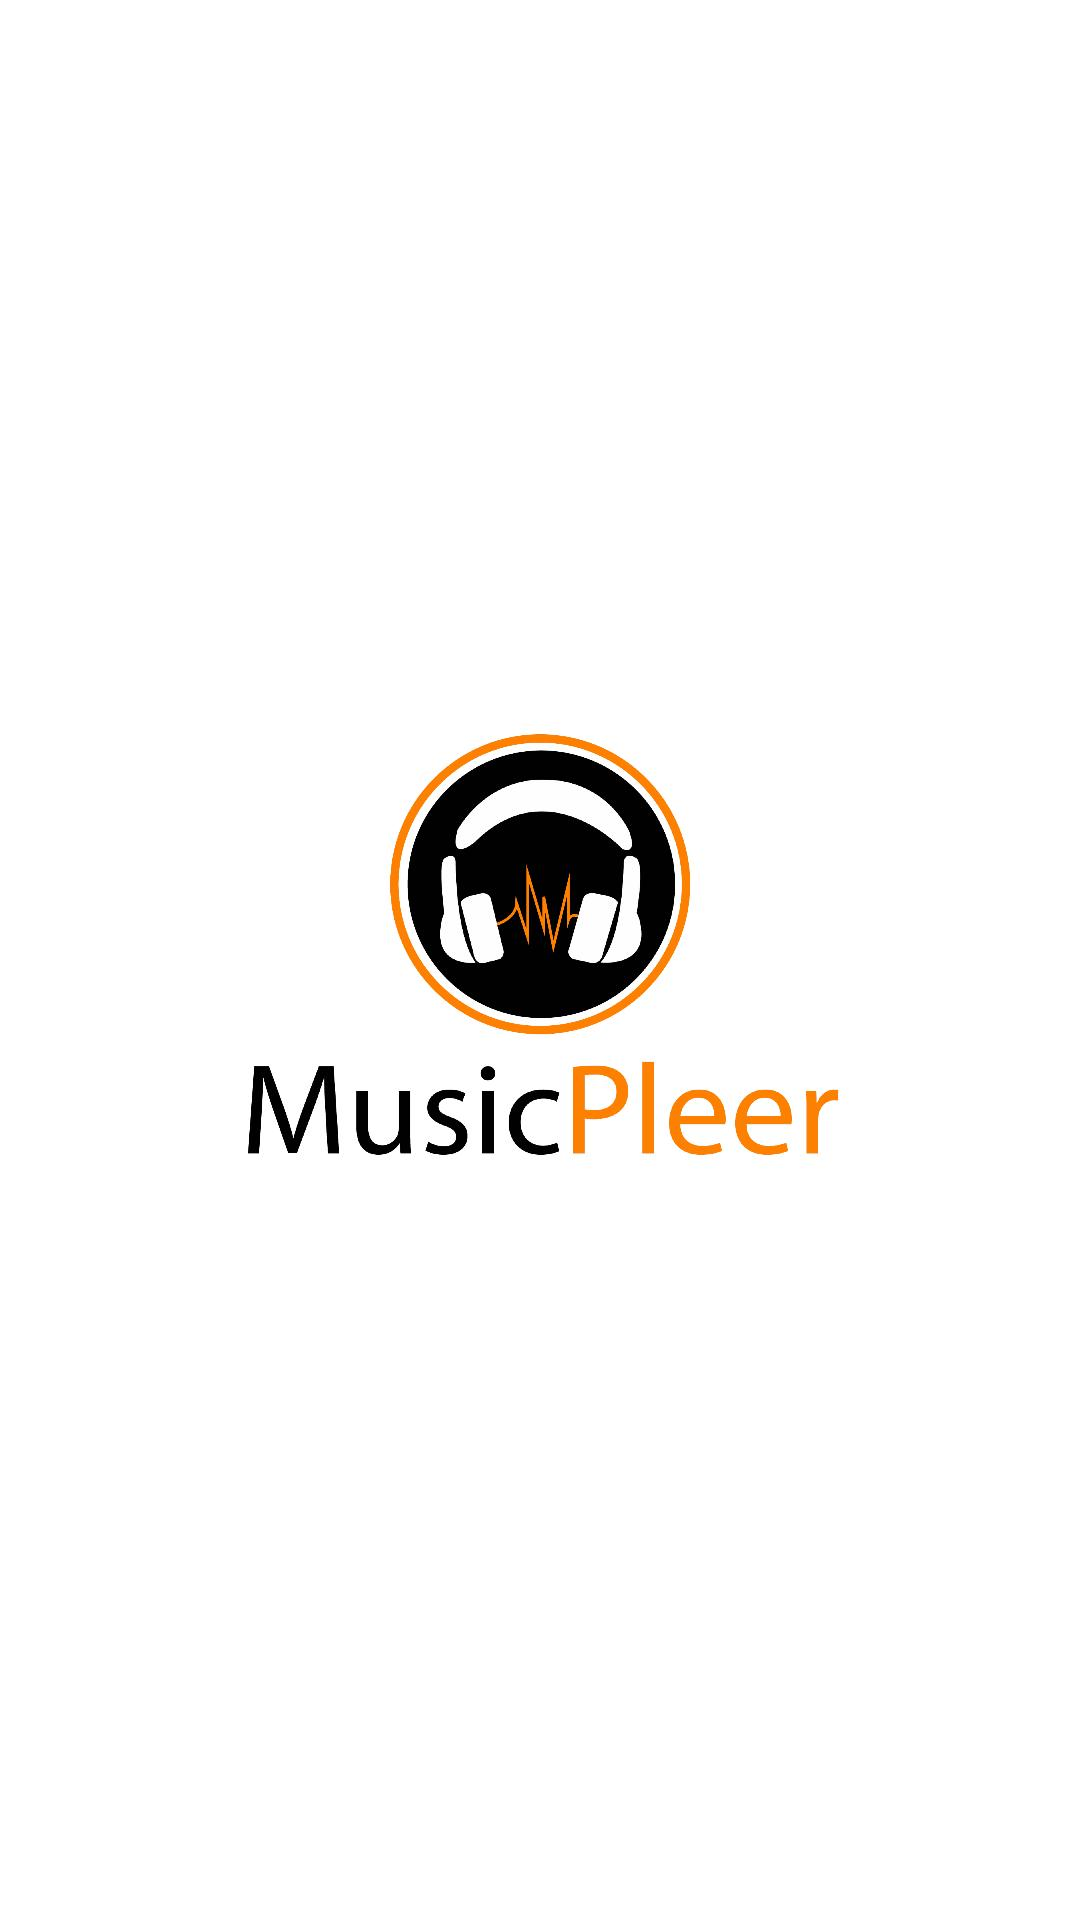 Musicpleer - Free Online Music App for Android - APK Download